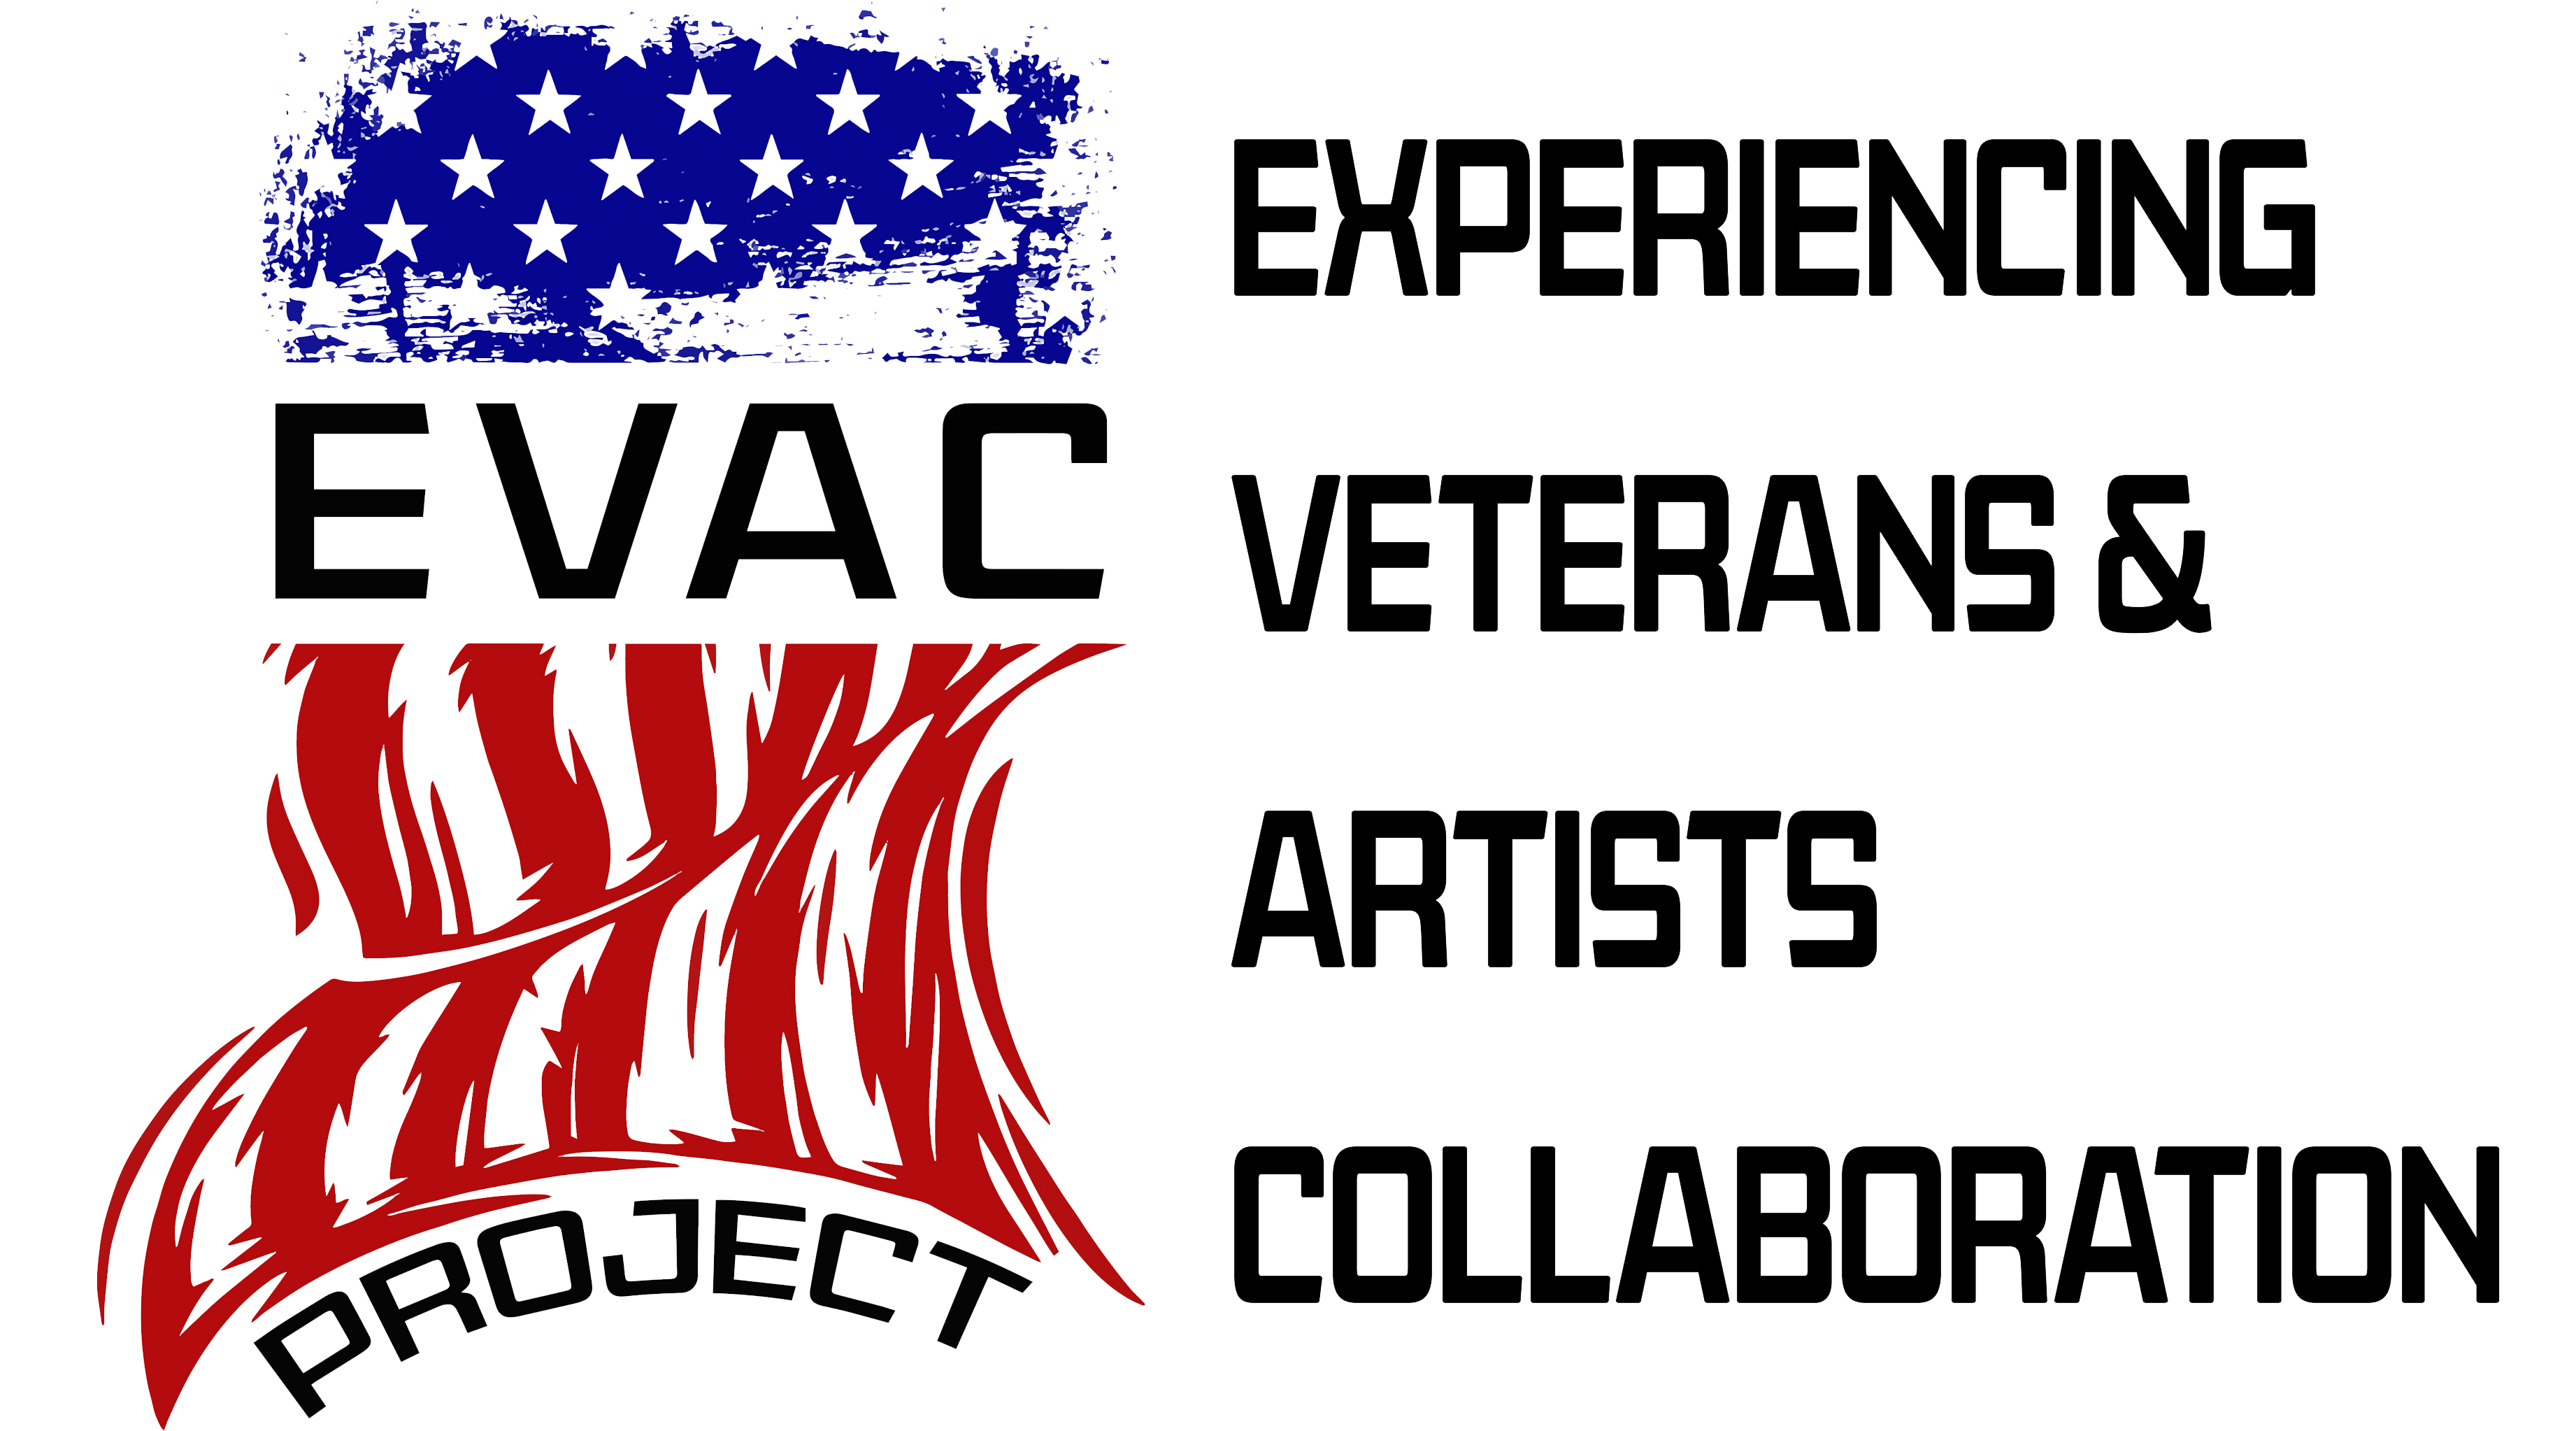 Experiencing Veterans & Artists Colaboration